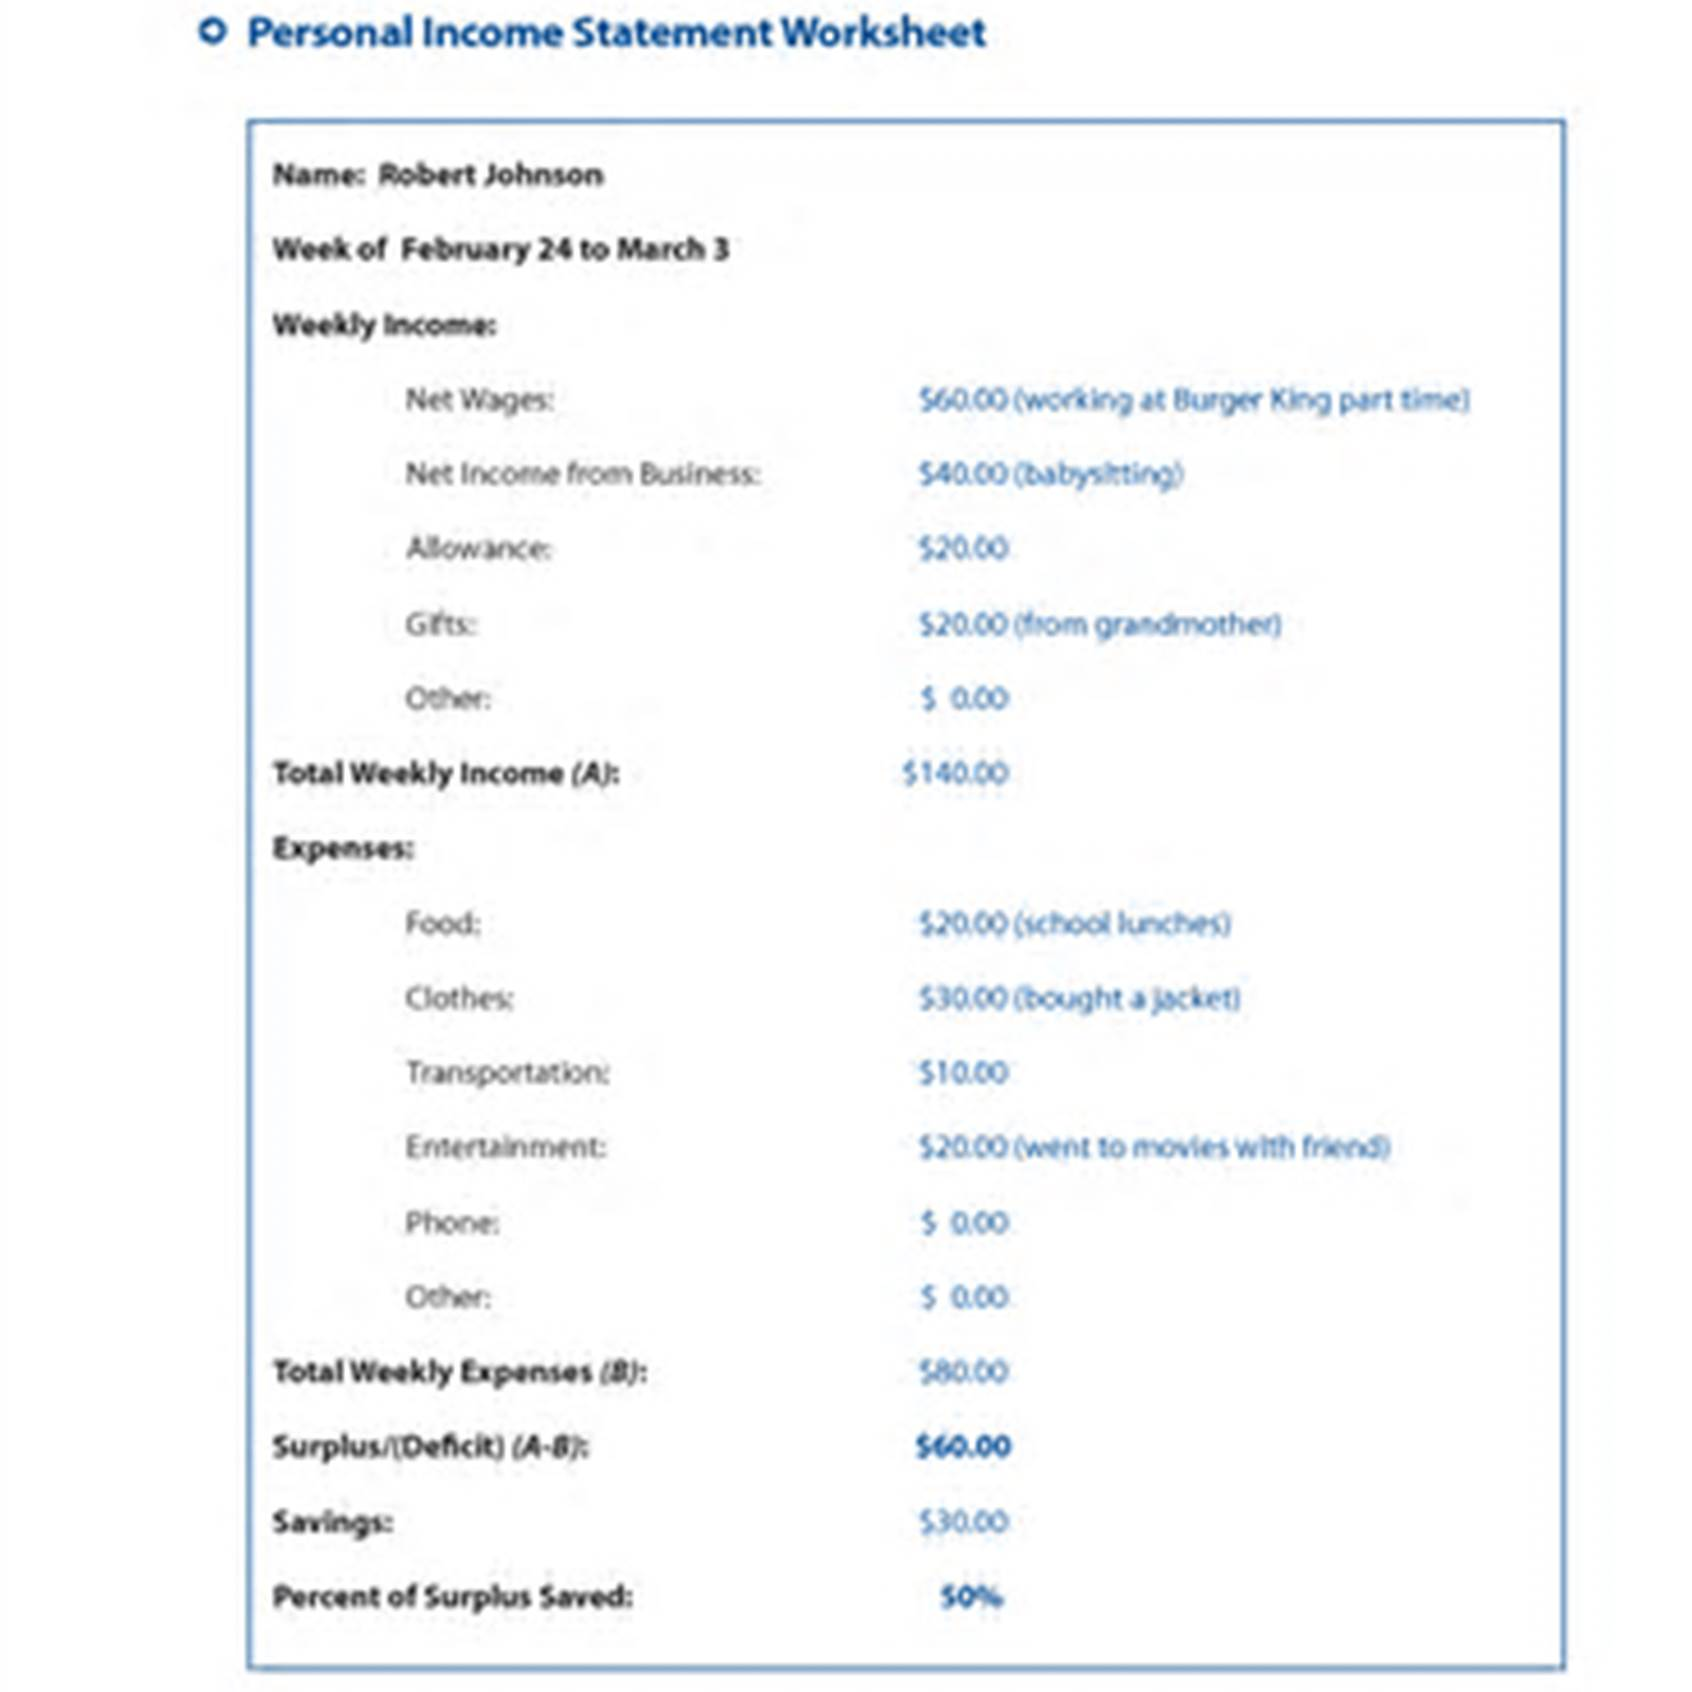 Retained Earnings Worksheet Income Statement Worksheet Template Income Statement Worksheet